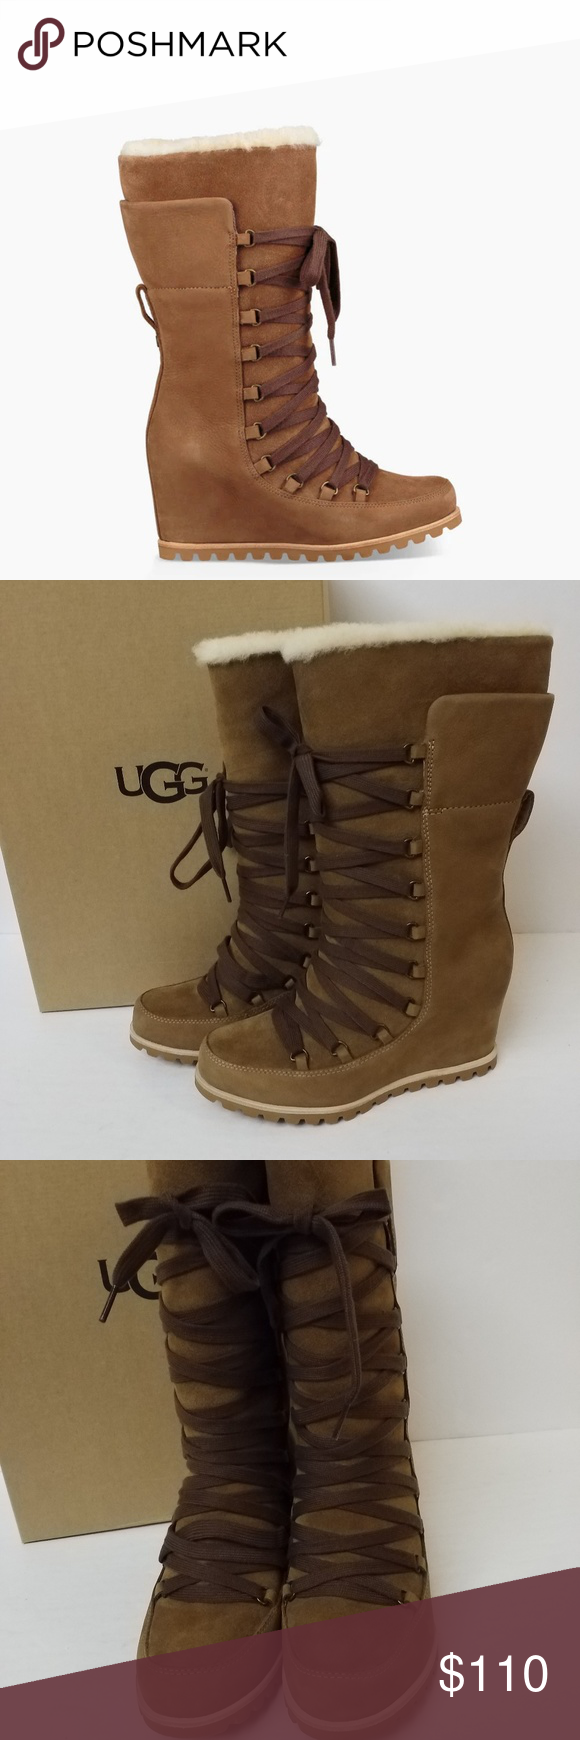 38cd36d7e6e New UGG boots Size 7.5 New in box, gorgeous UGG Chestnut 'Mason ...